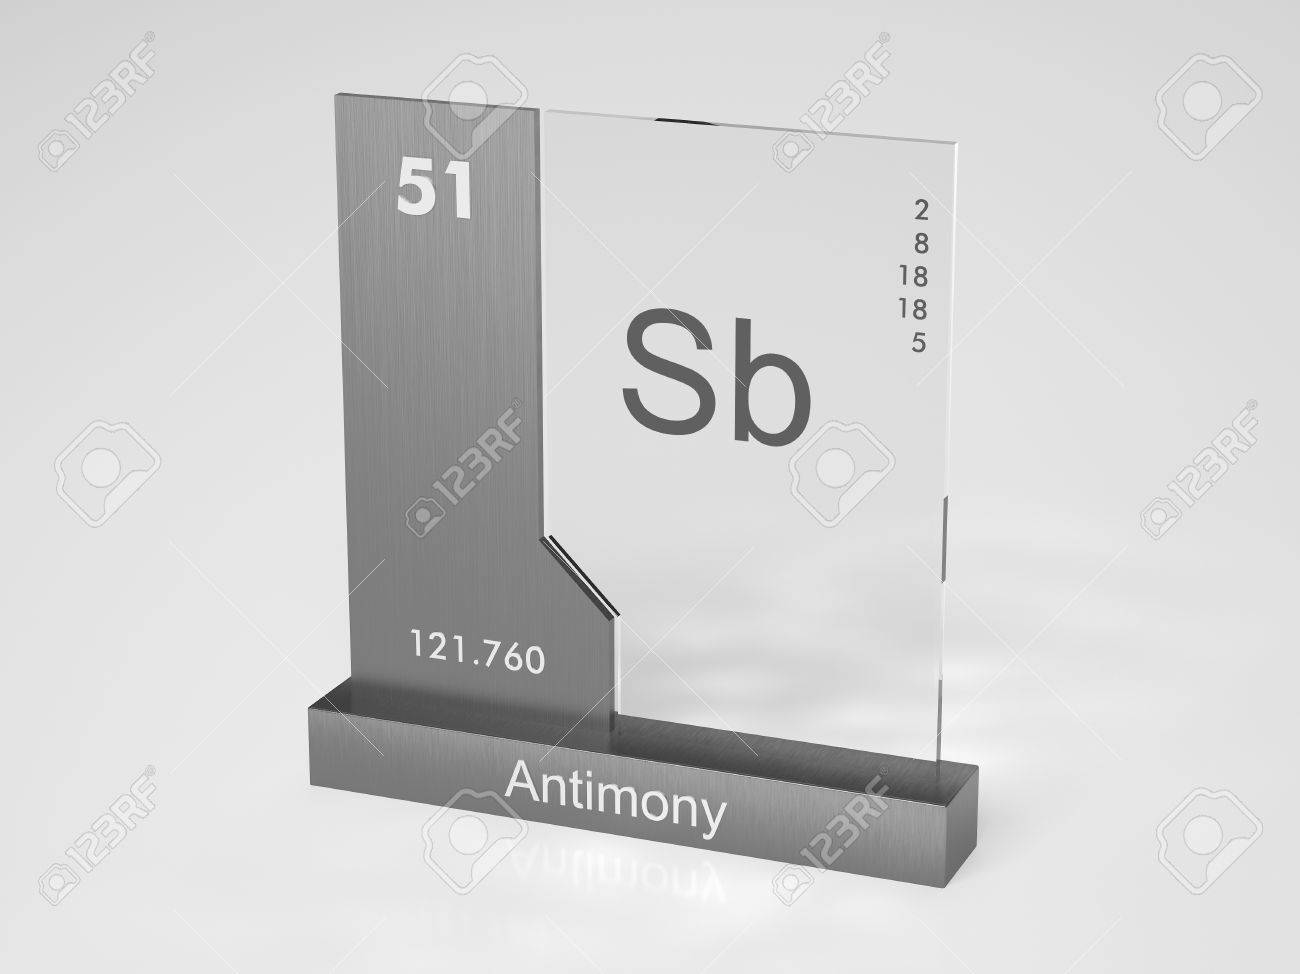 Antimony symbol sb chemical element of the periodic table stock antimony symbol sb chemical element of the periodic table stock photo 10470020 urtaz Image collections